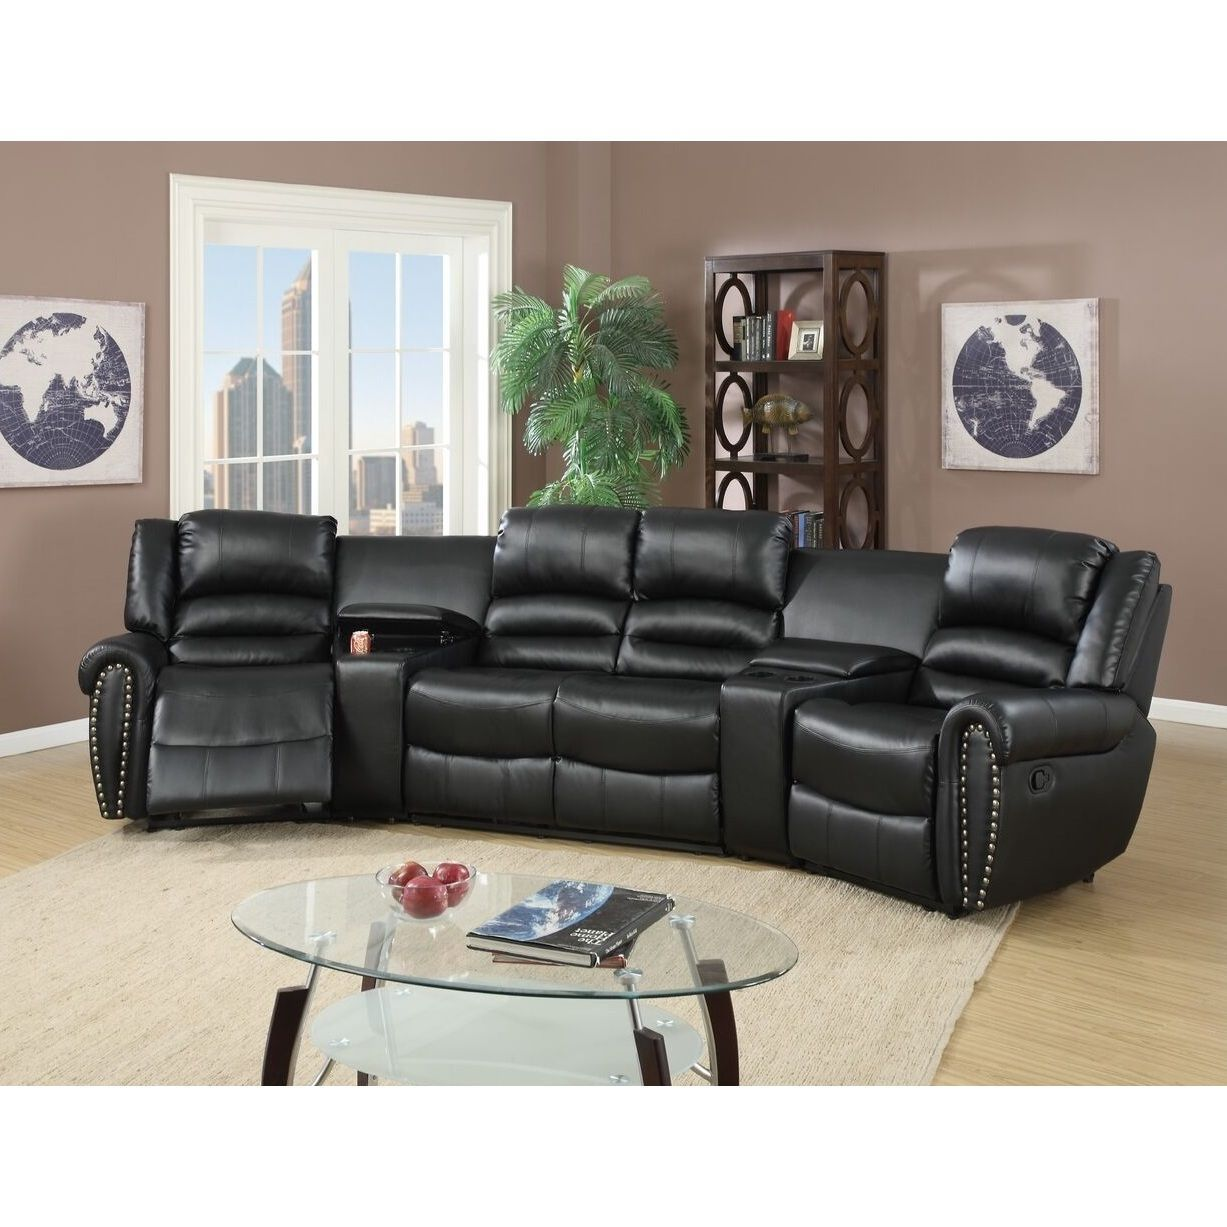 Poundex Auvinya Motional Home Theater Bonded Leather Sectional (B